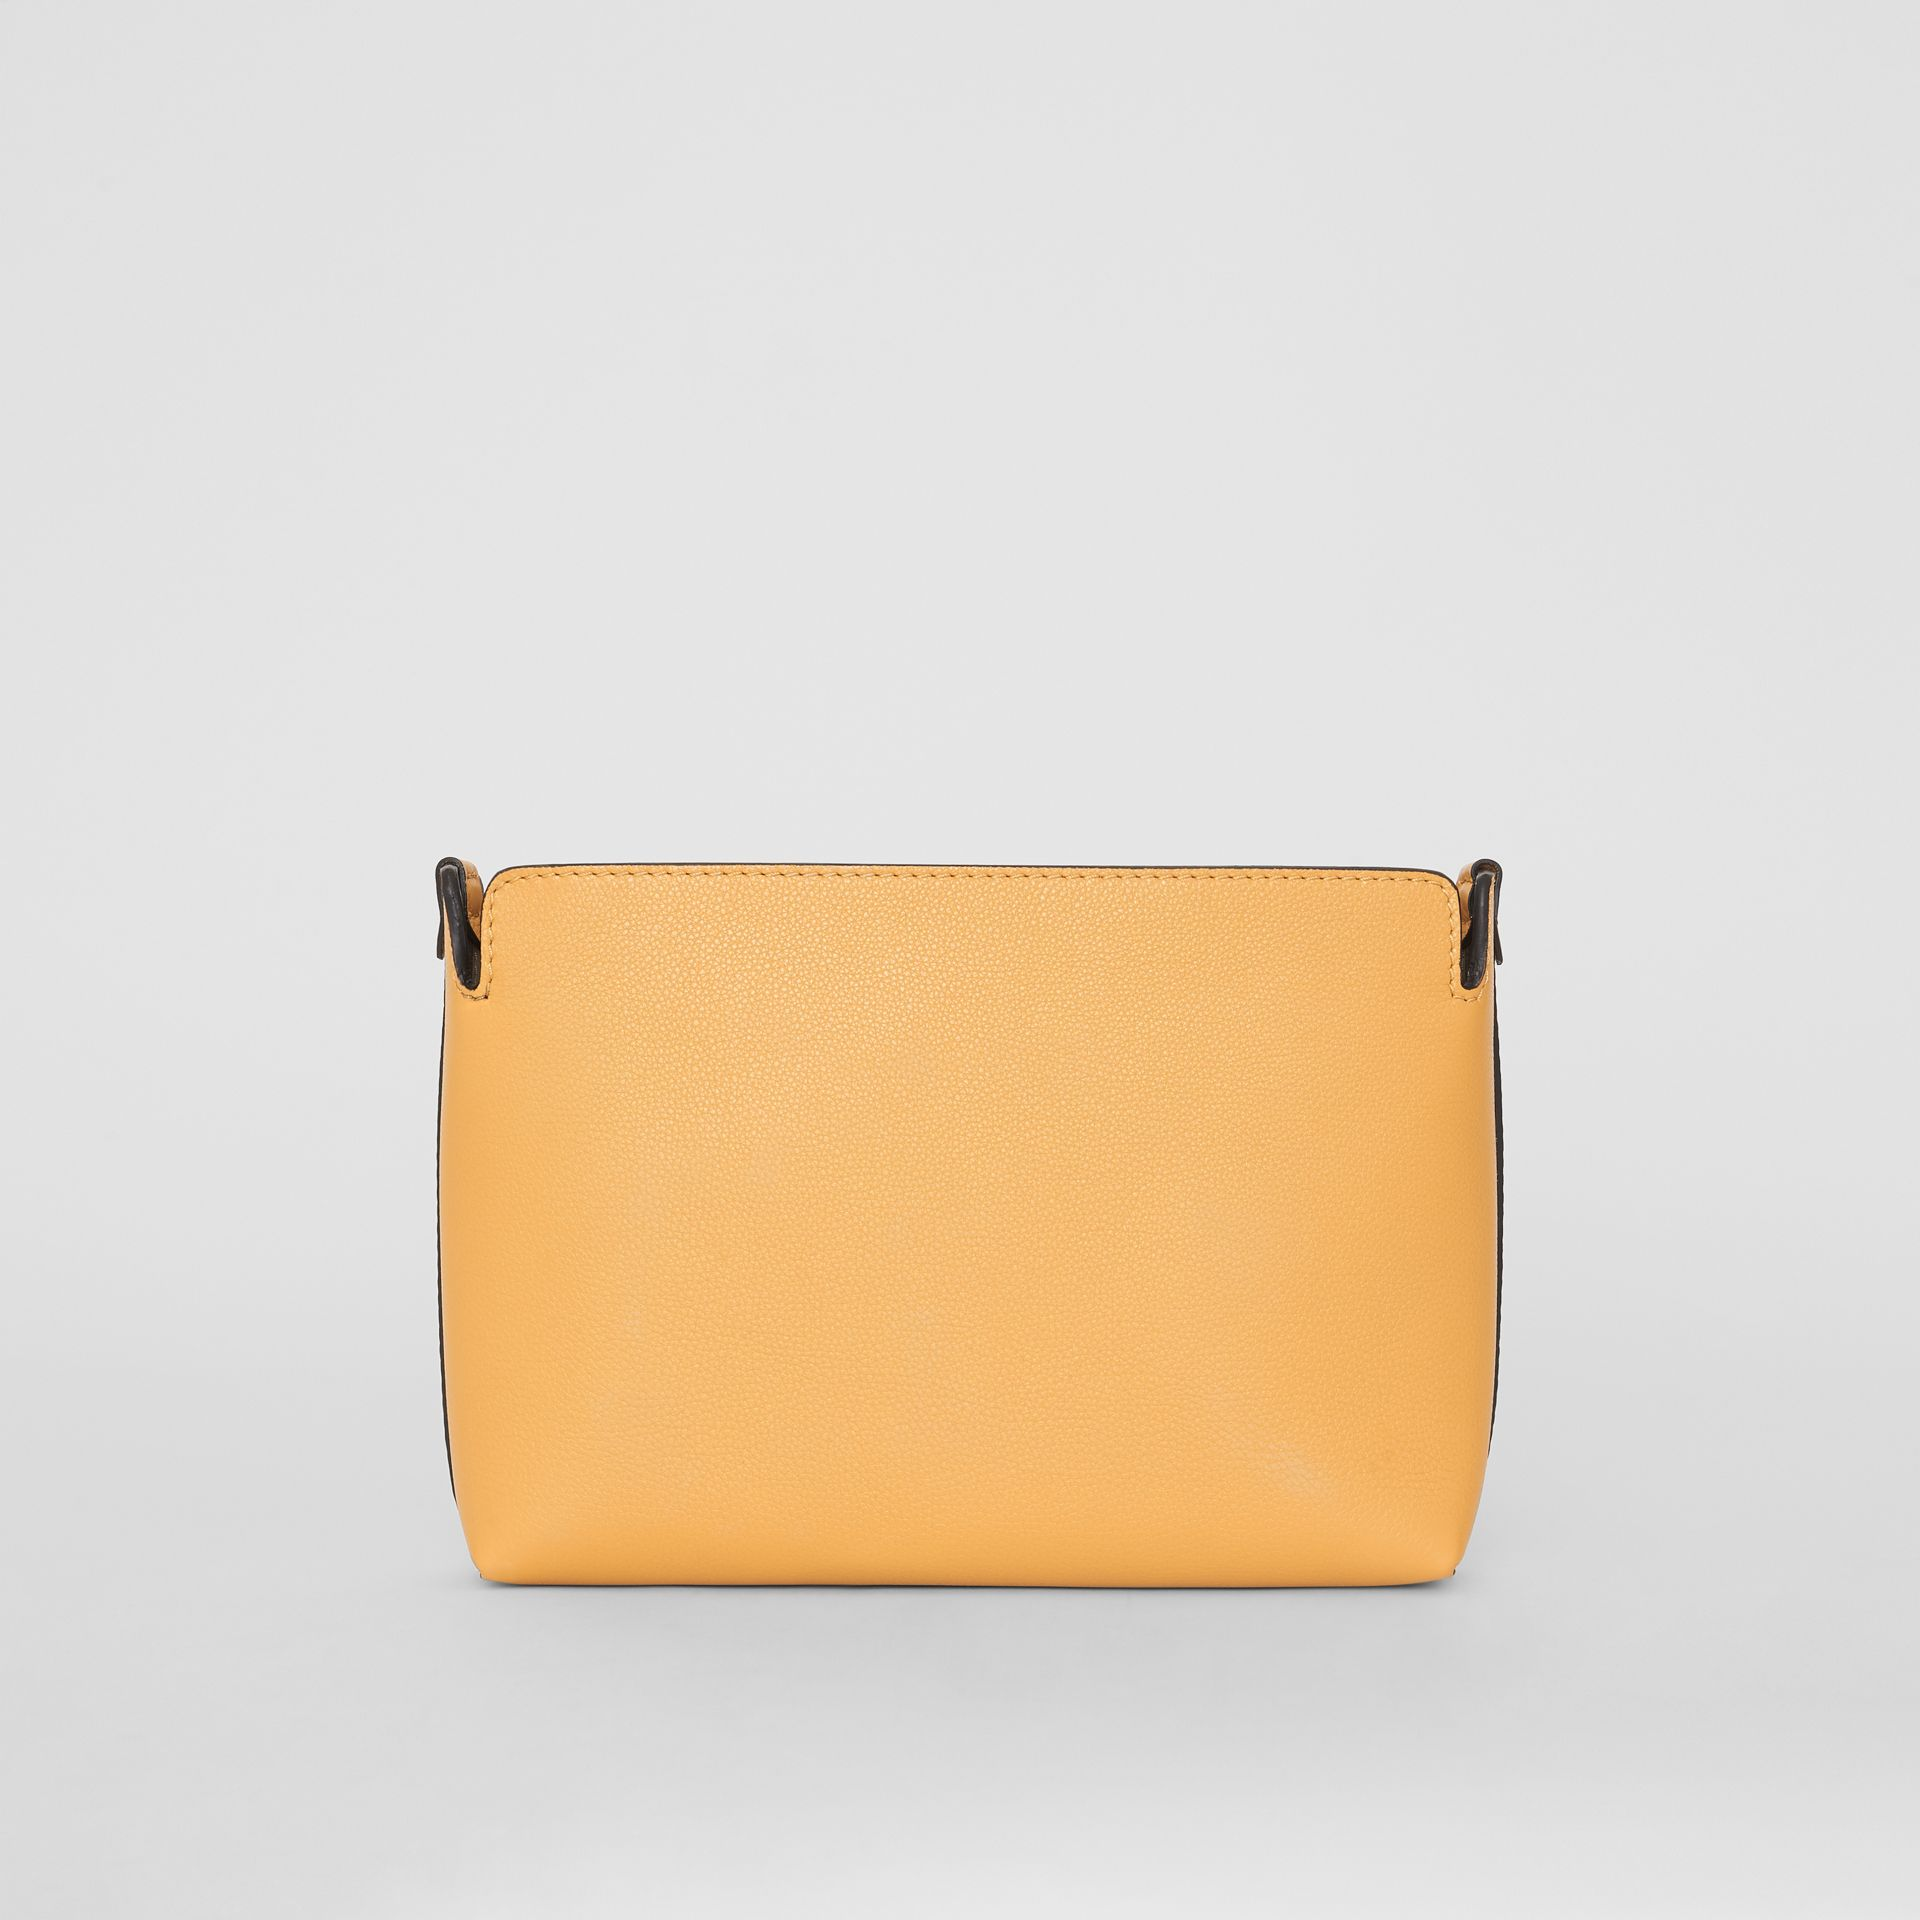 Medium Tri-tone Leather Clutch in Limestone/cornflower Yellow - Women | Burberry - gallery image 5